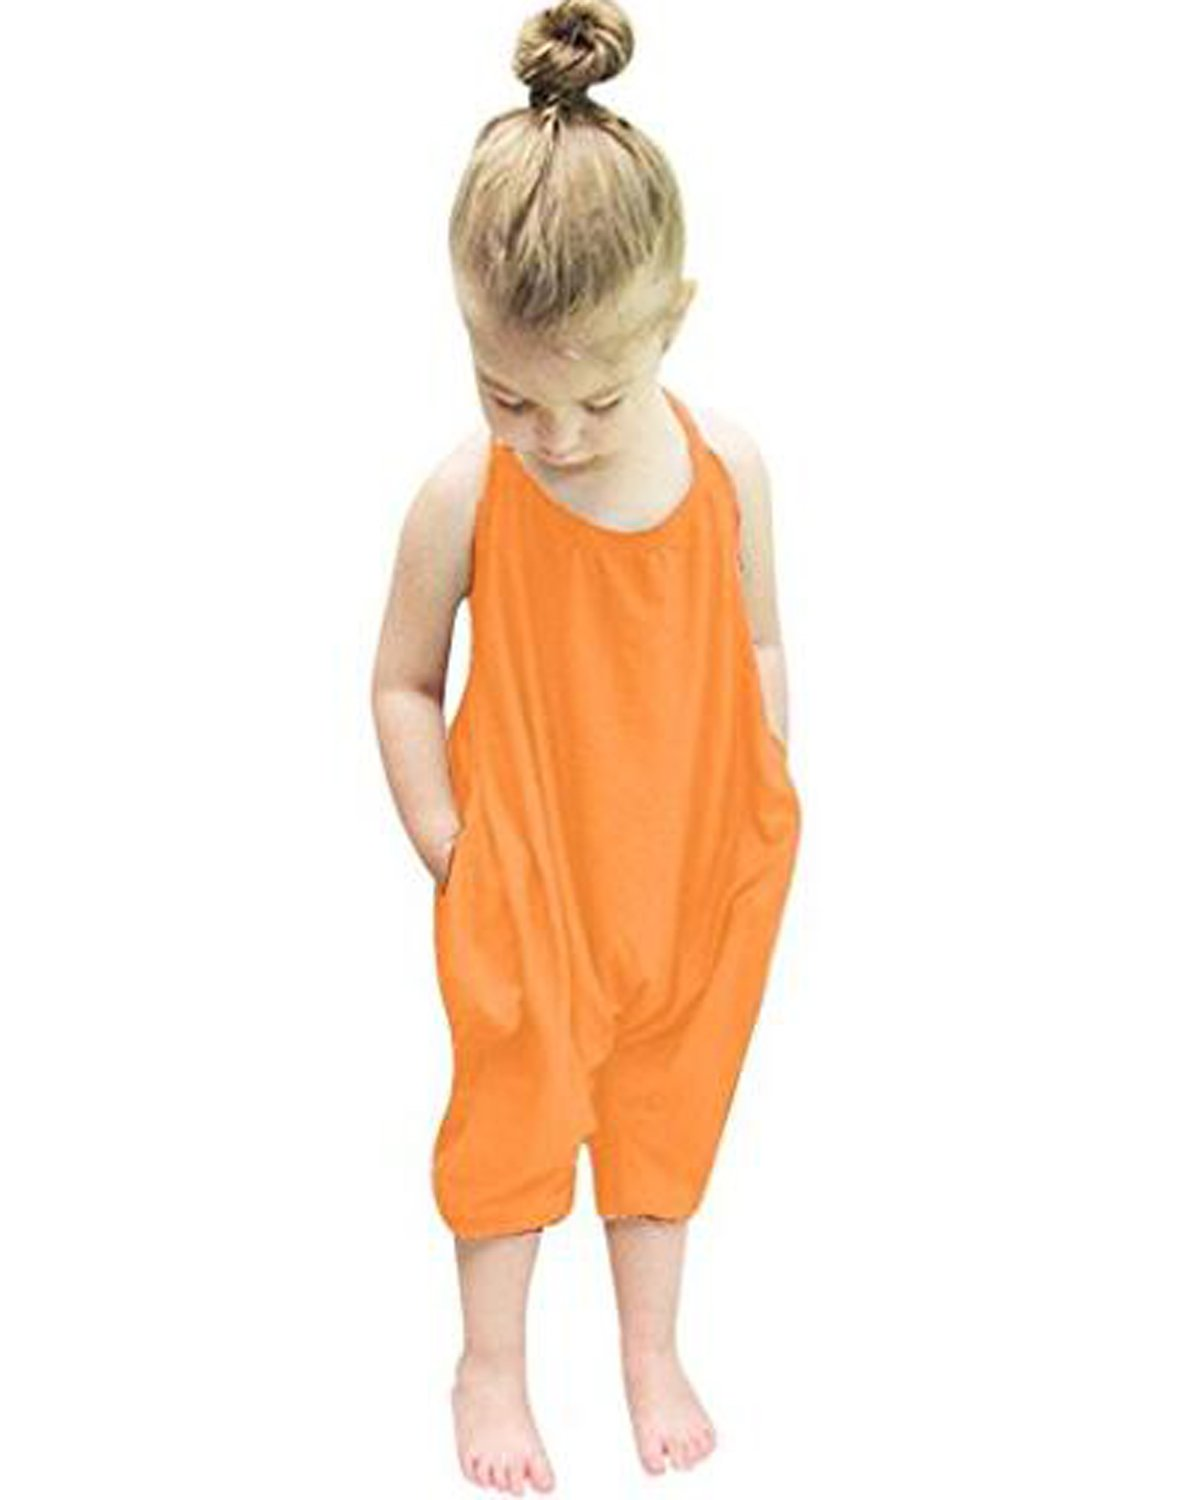 Kidsform Baby Girls Straps Rompers Cotton Halter Toddler Jumpsuit Playsuit Harem Pants One-Piece For Kids 6M-6T Orange 2-3 Years